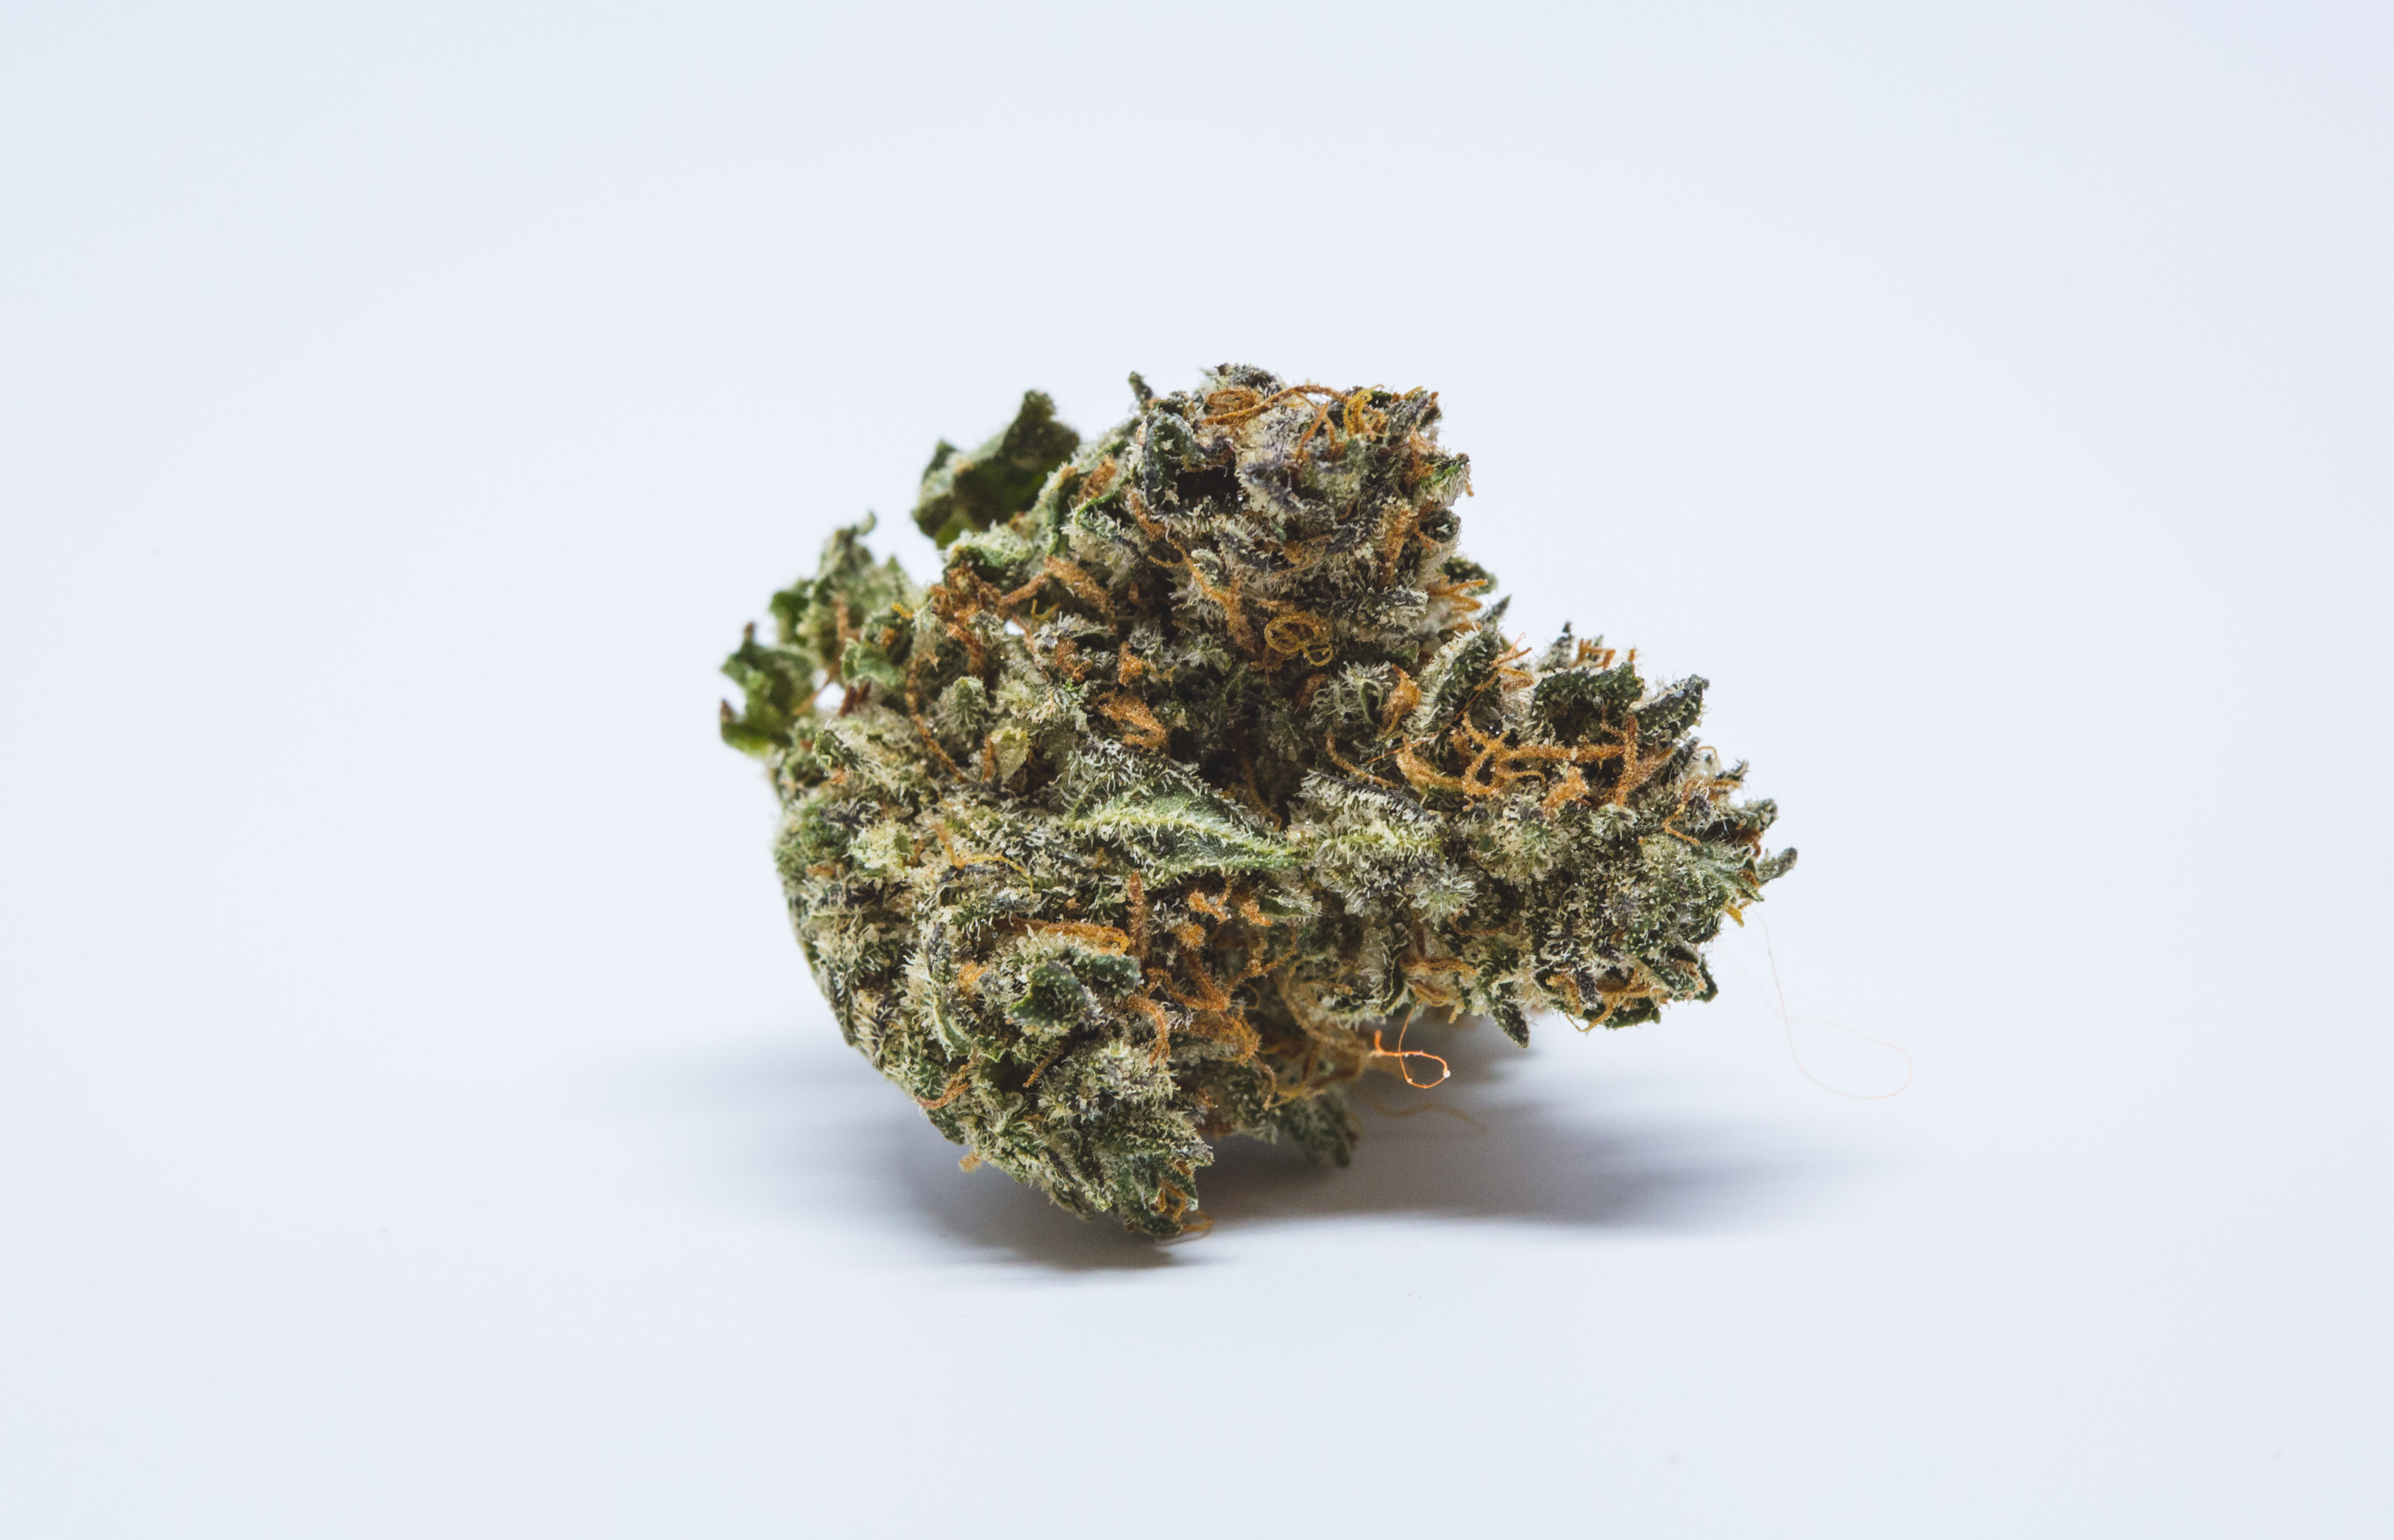 Allevi8 Blue Dream 39 Weed in the Morning: Wake and Bake Strains to Start Your Day